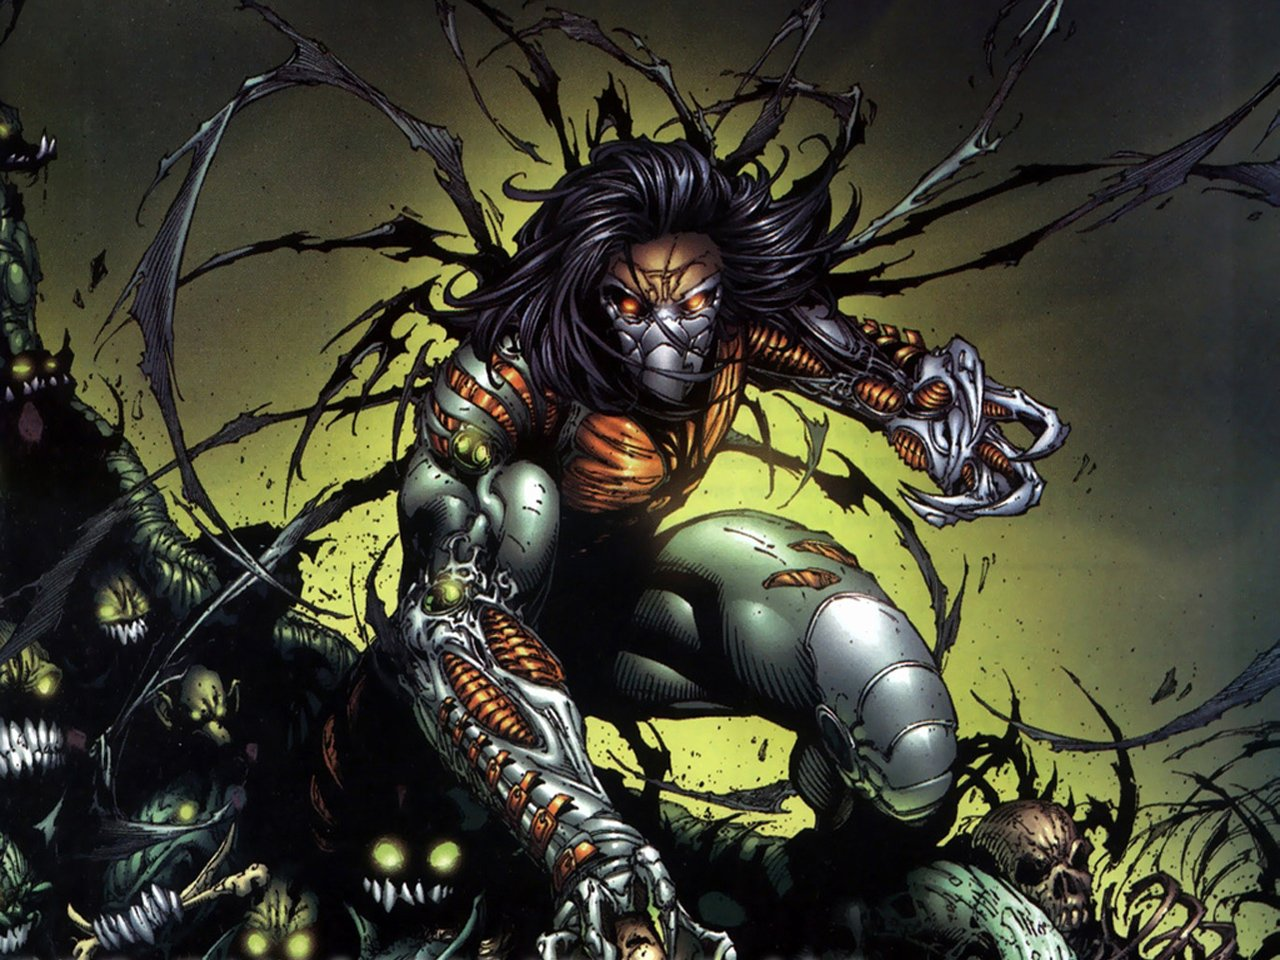 The Darkness published by Top Cow